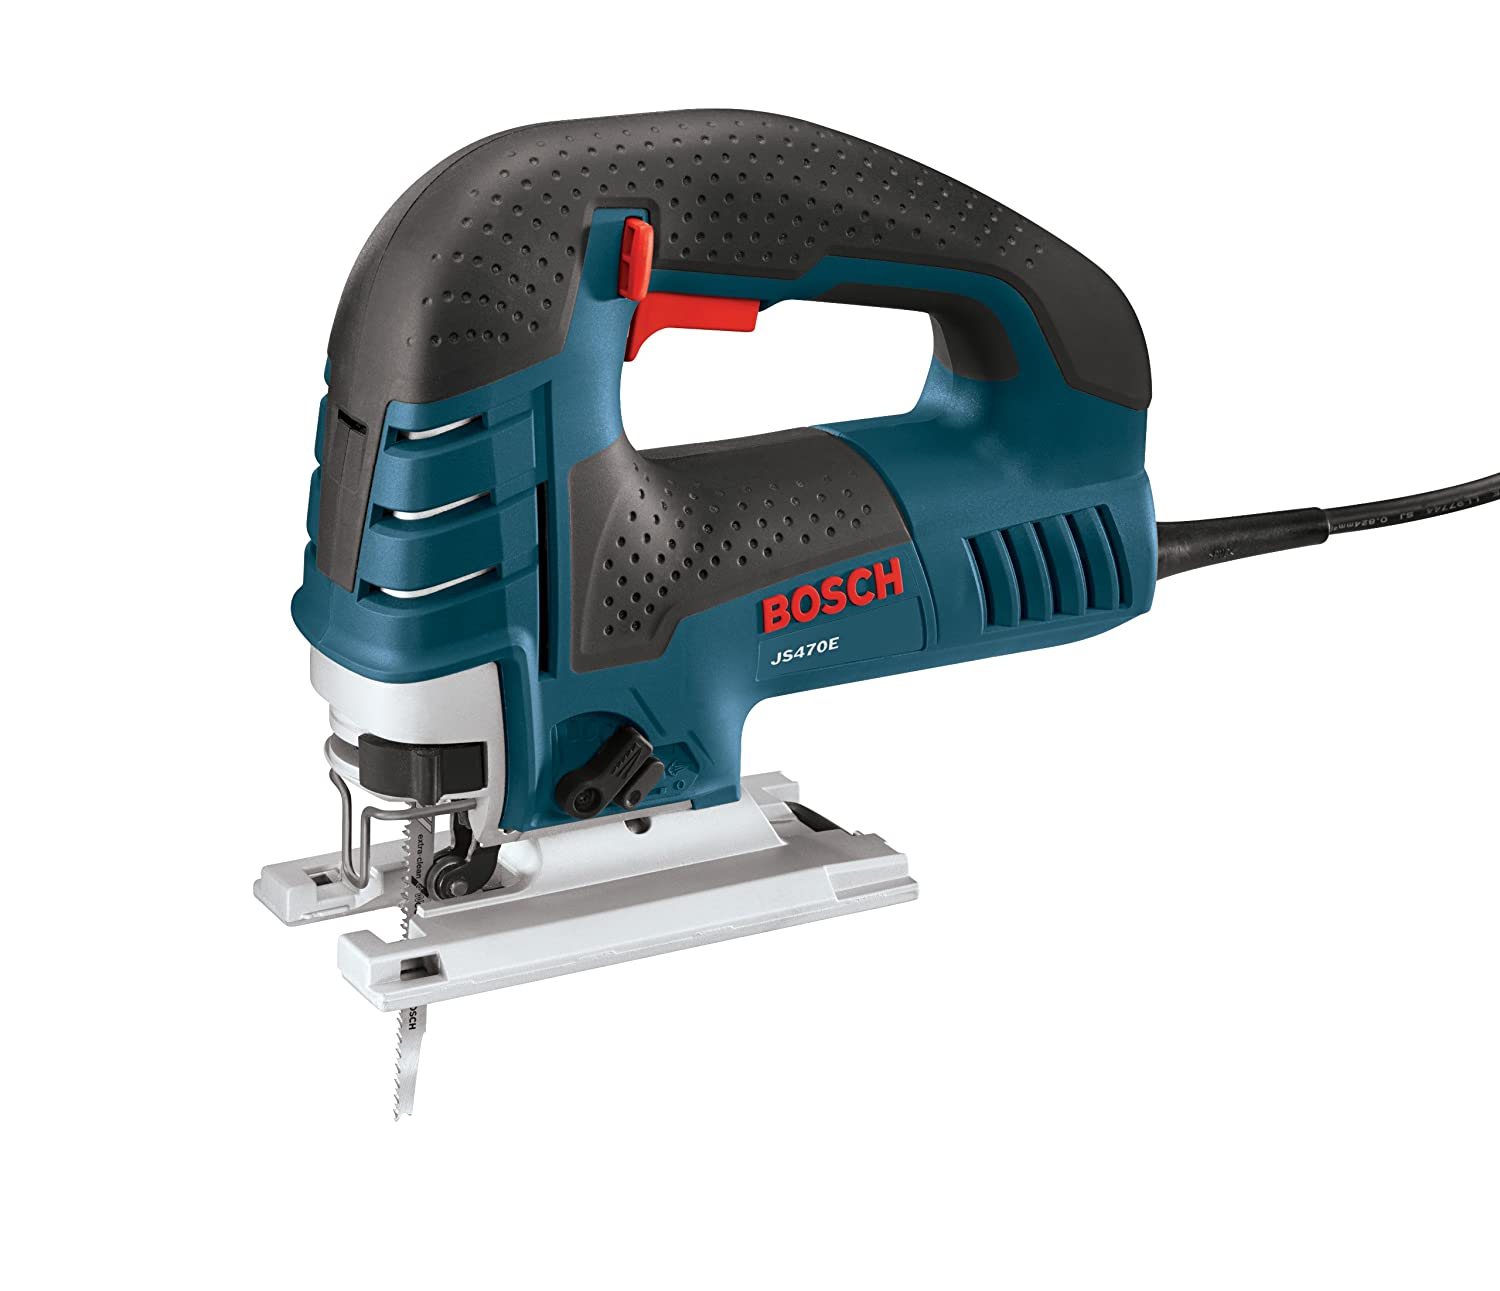 "Bosch Power Tools Jig Saws - JS470E Corded Top-Handle Jigsaw - 120V Low-Vibration, 7.0-Amp Variable Speed For Smooth Cutting Up To 5-7/8"" Inch on Wood, 3/8"" Inch on Steel For Countertop, Woodworking"